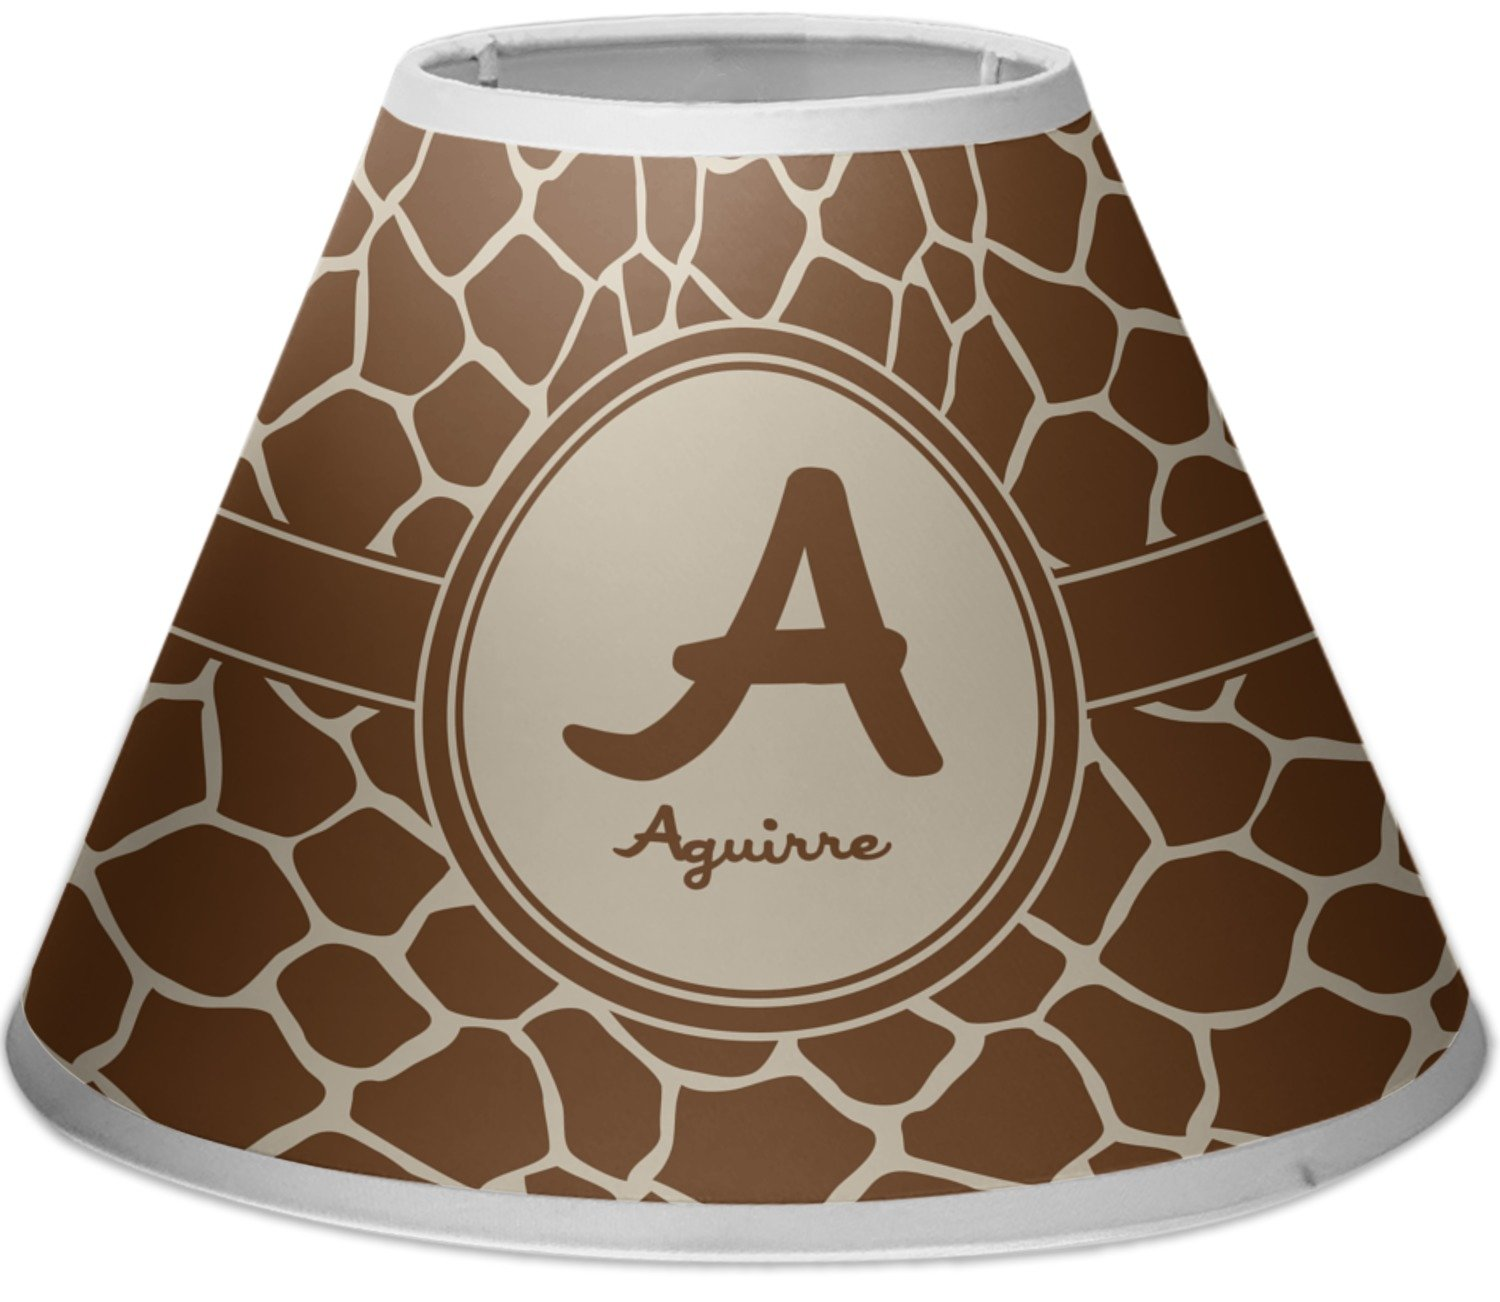 RNK Shops Giraffe Print Empire Lamp Shade (Personalized) by RNK Shops